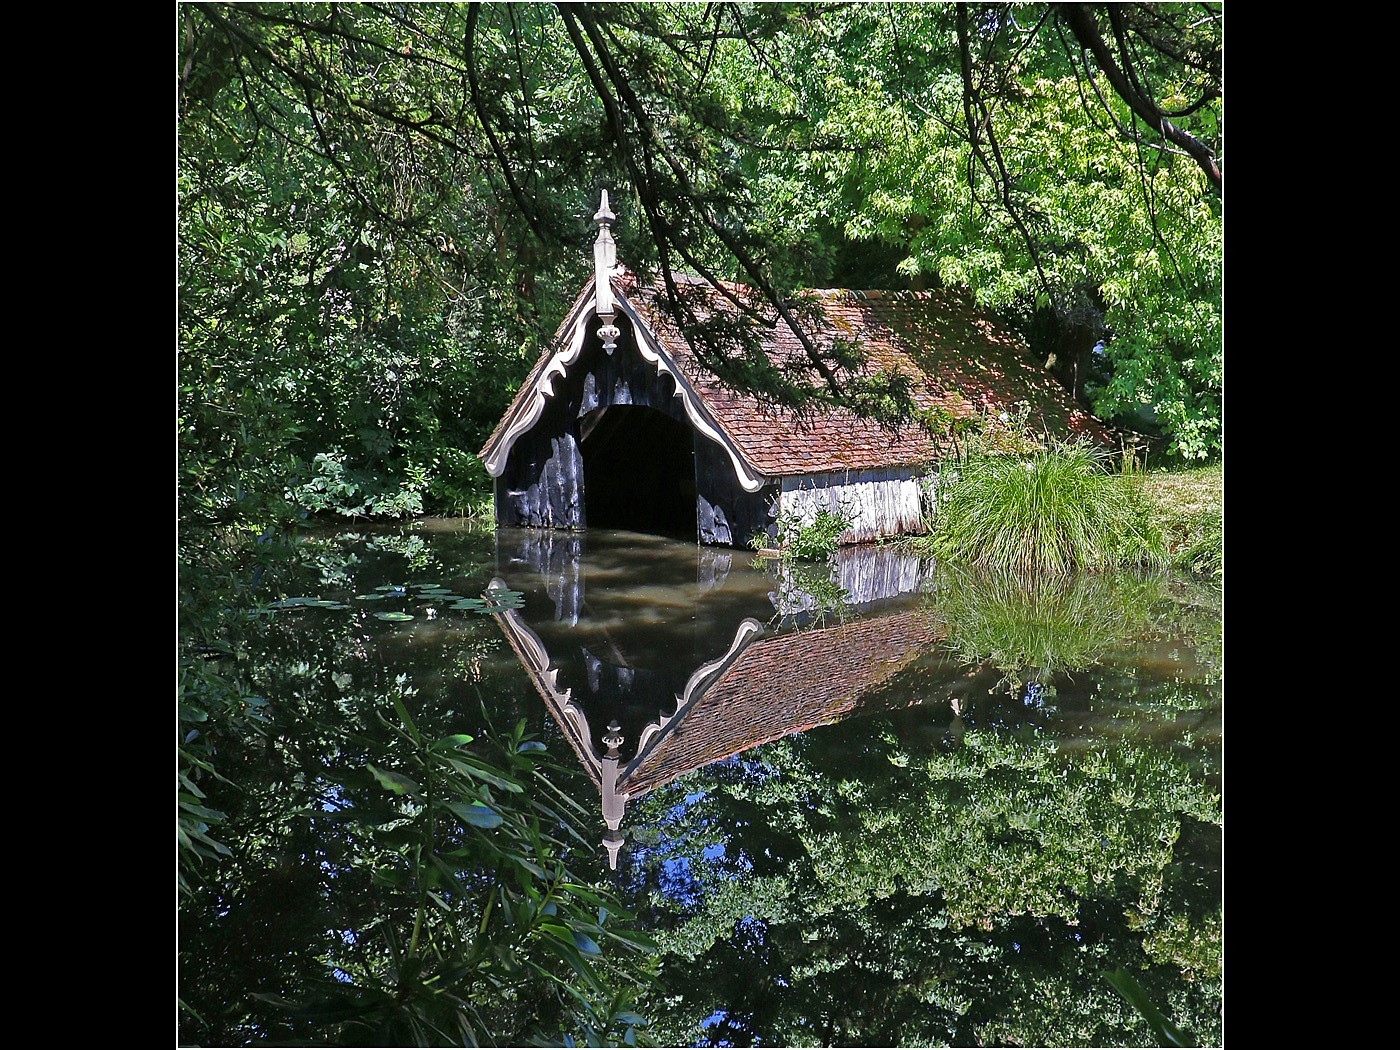 Boat House with Reflections